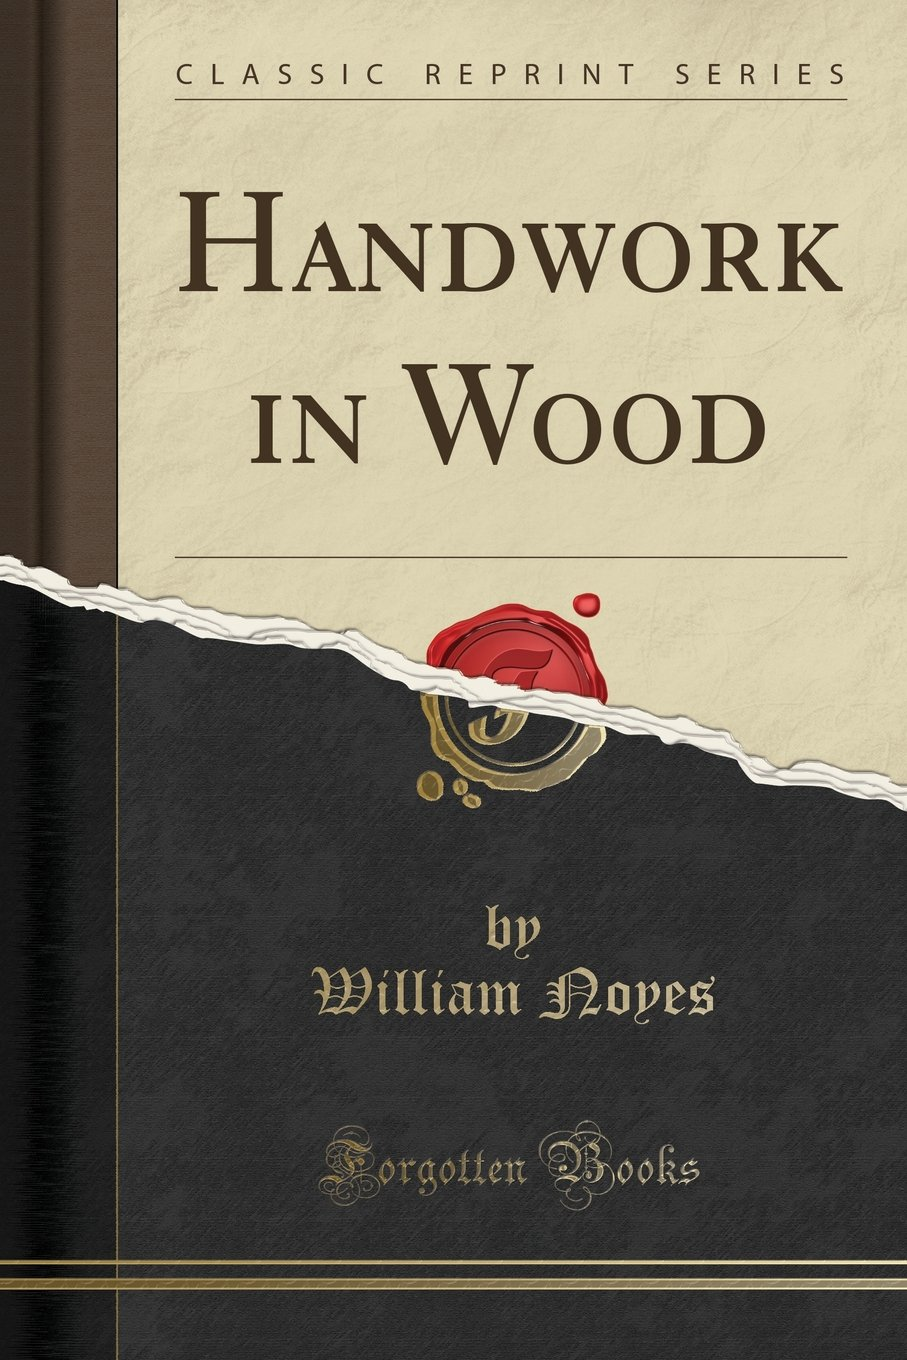 handwork-in-wood-classic-reprint